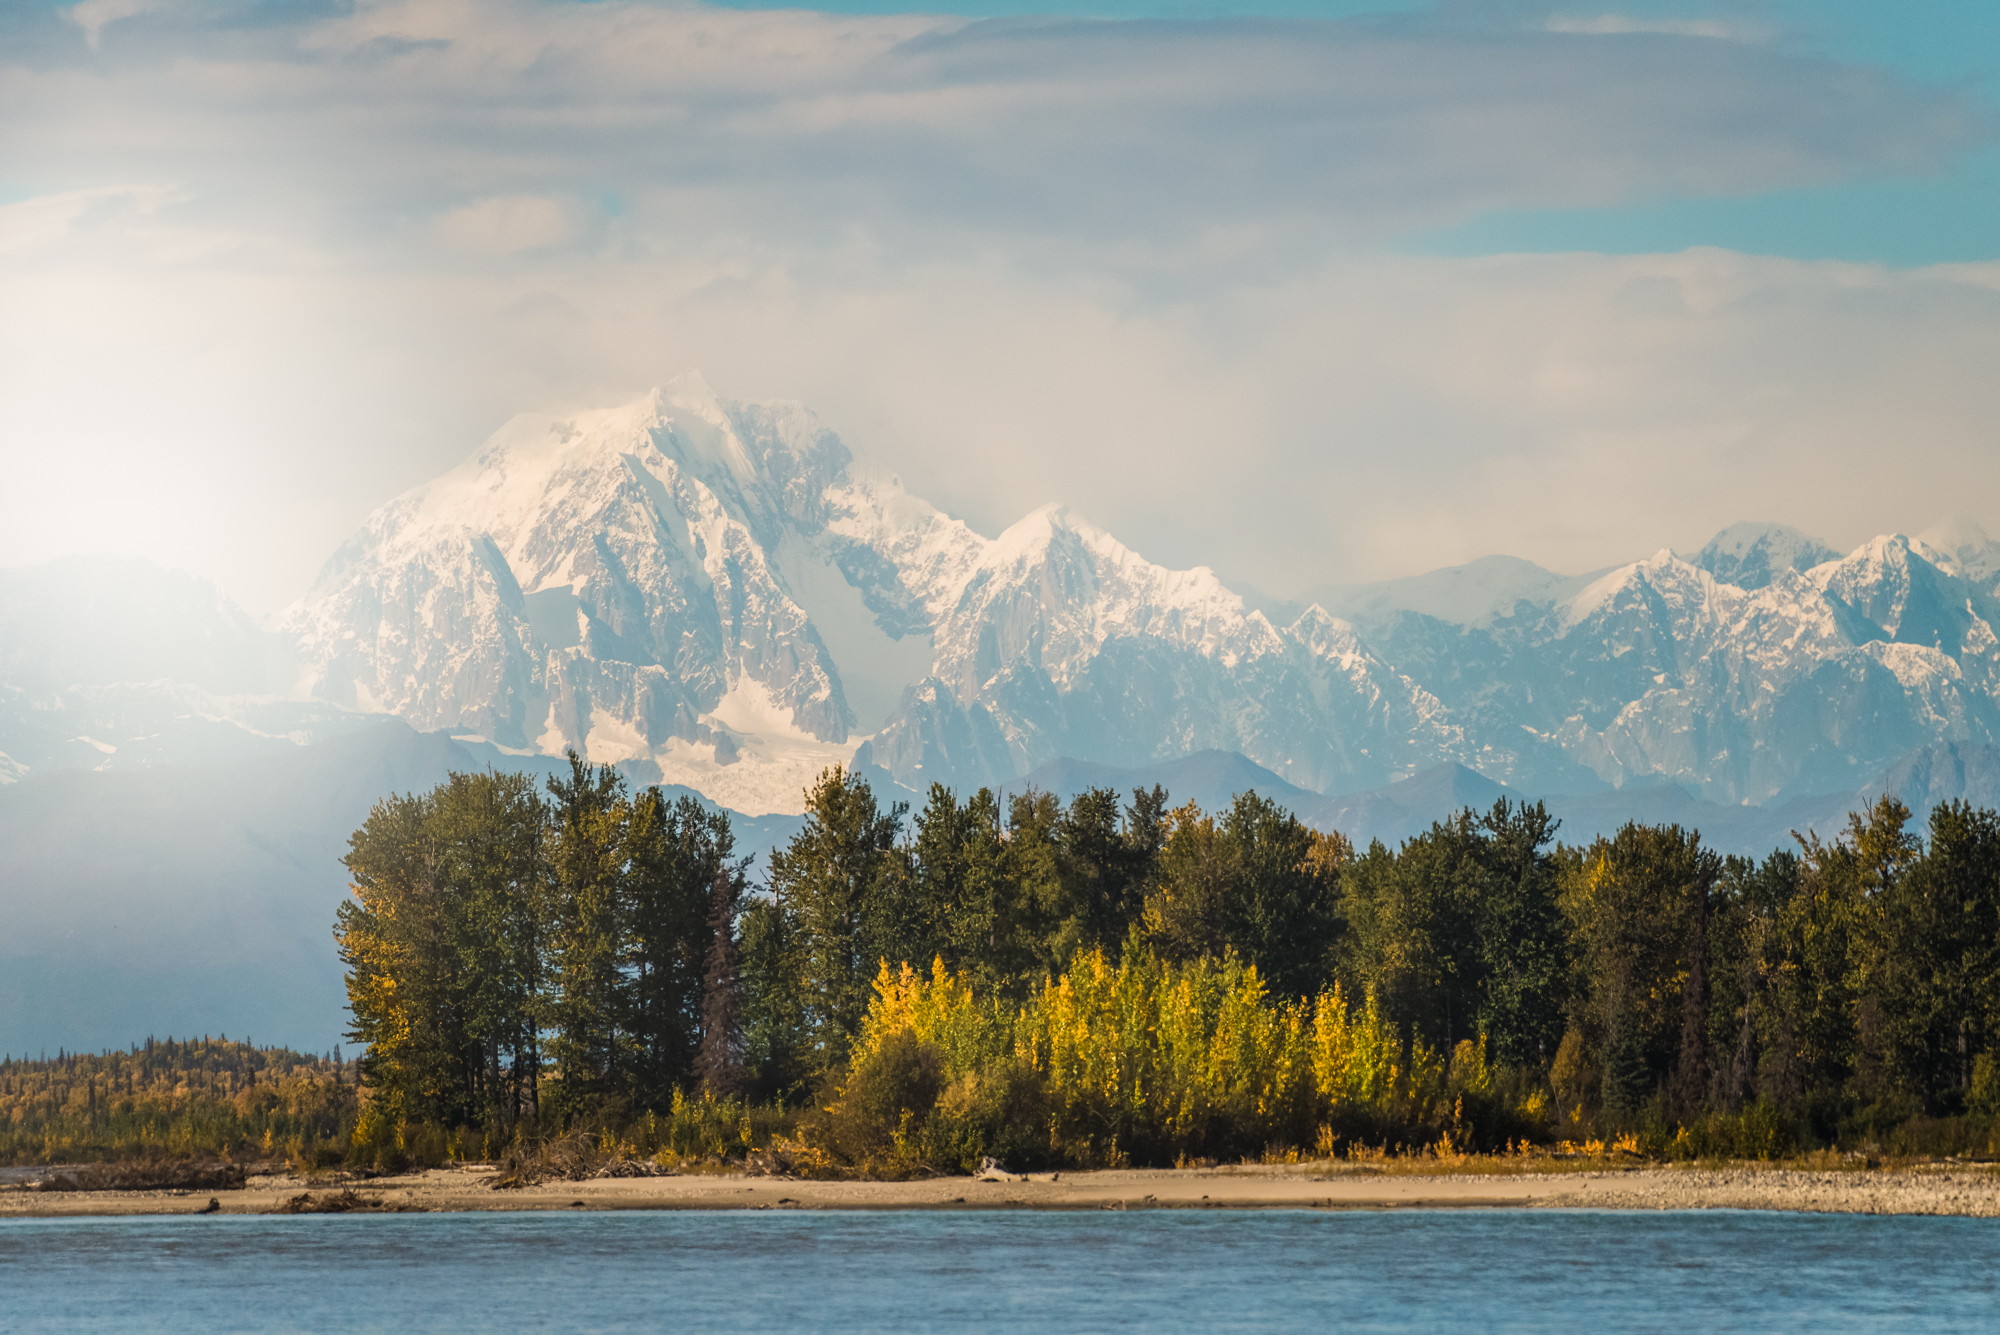 Denali  (also known as Mount  McKinley , which is its former official name) is the highest mountain peak in North America